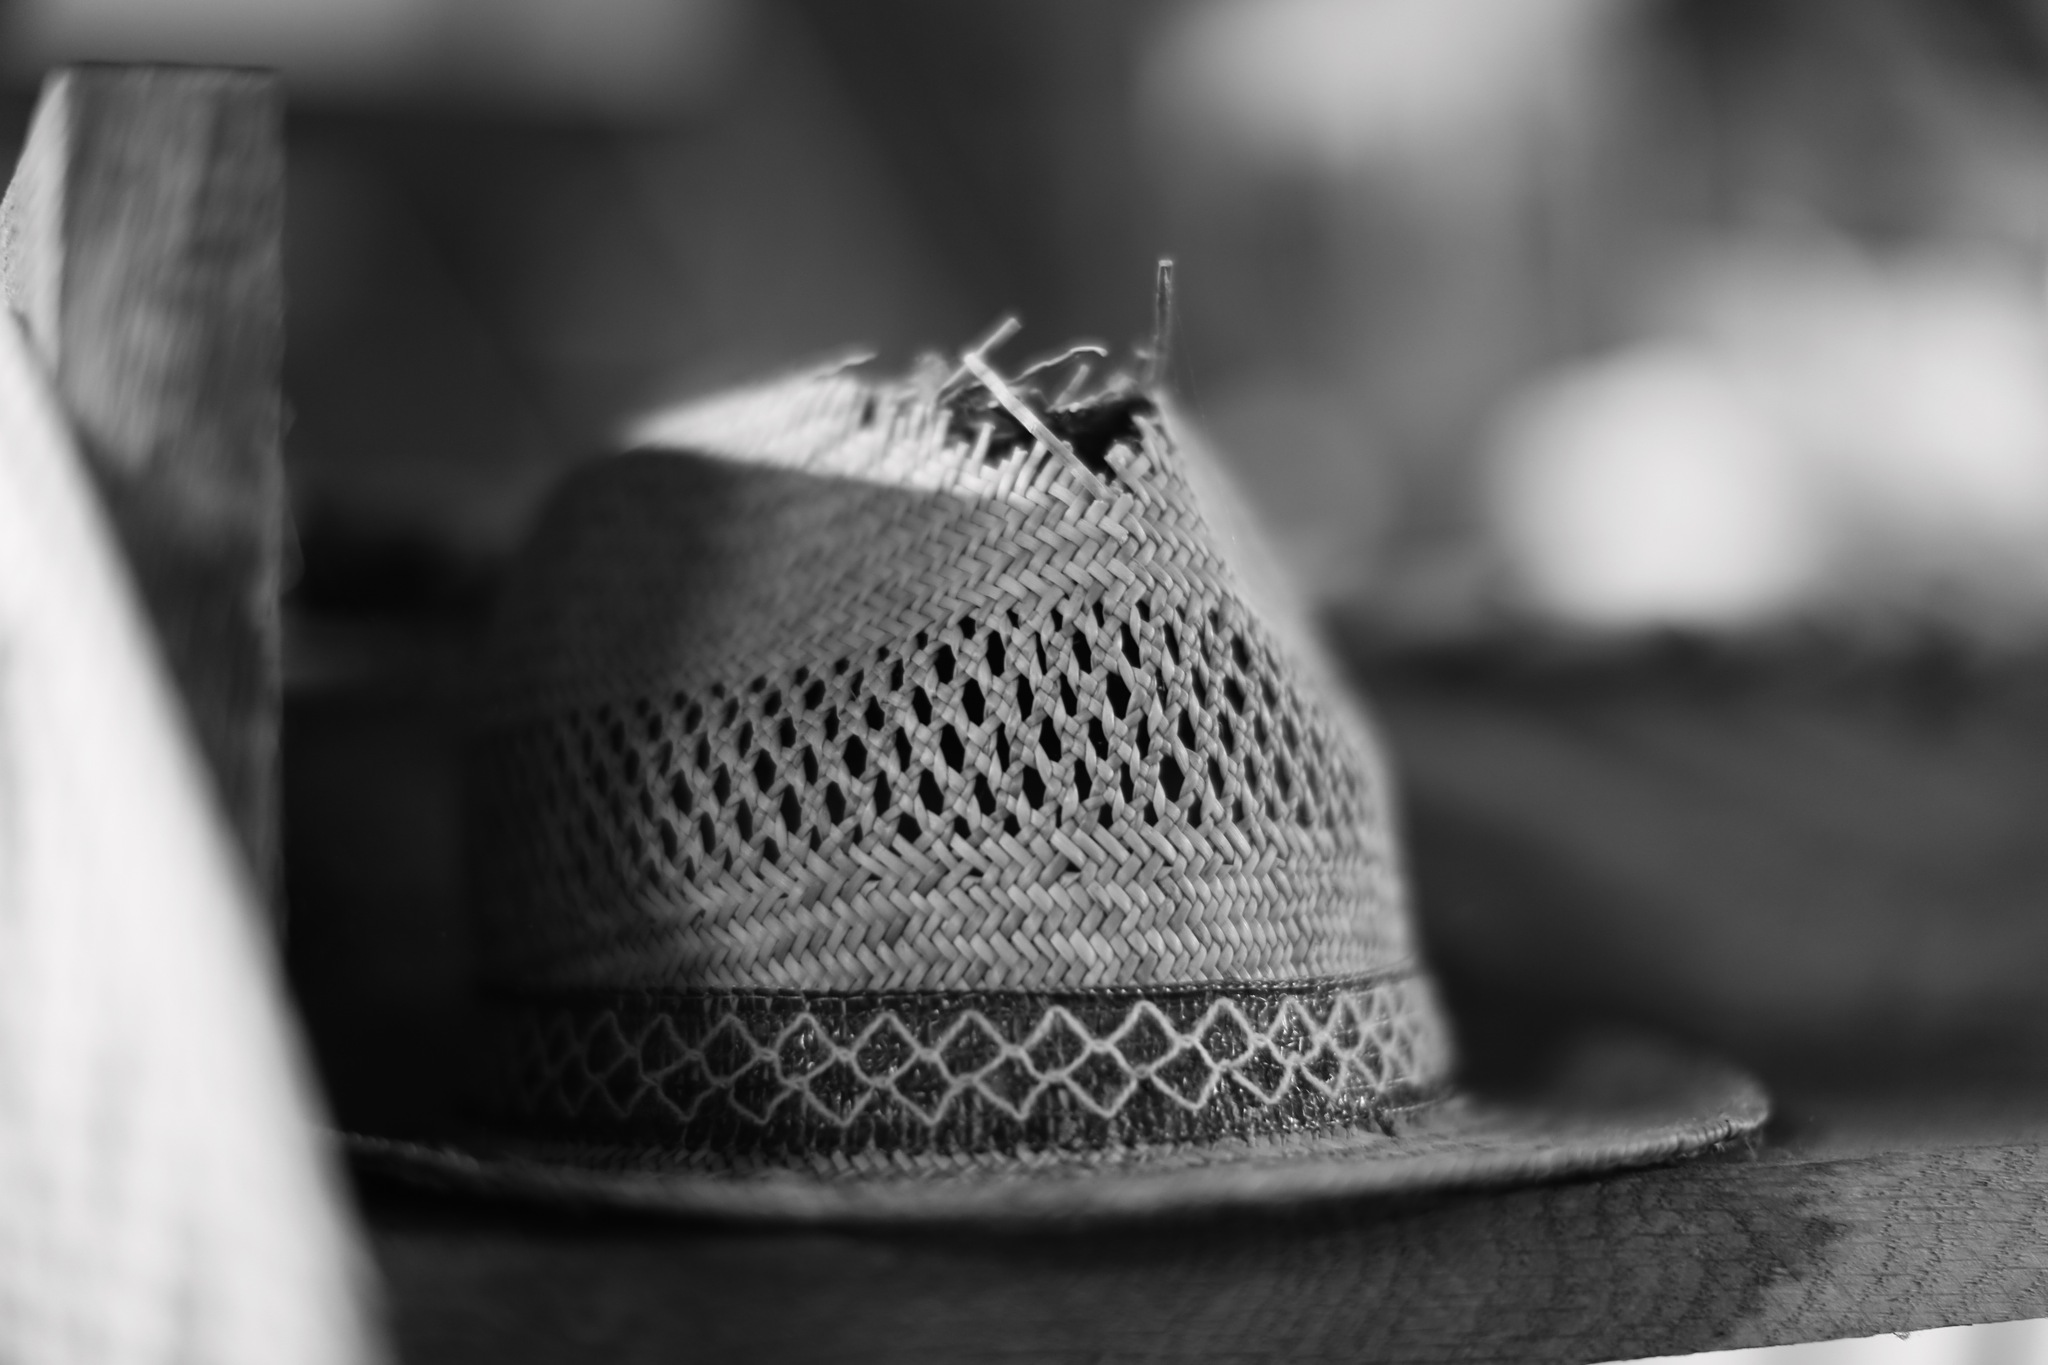 hat by Jürgen Cordt